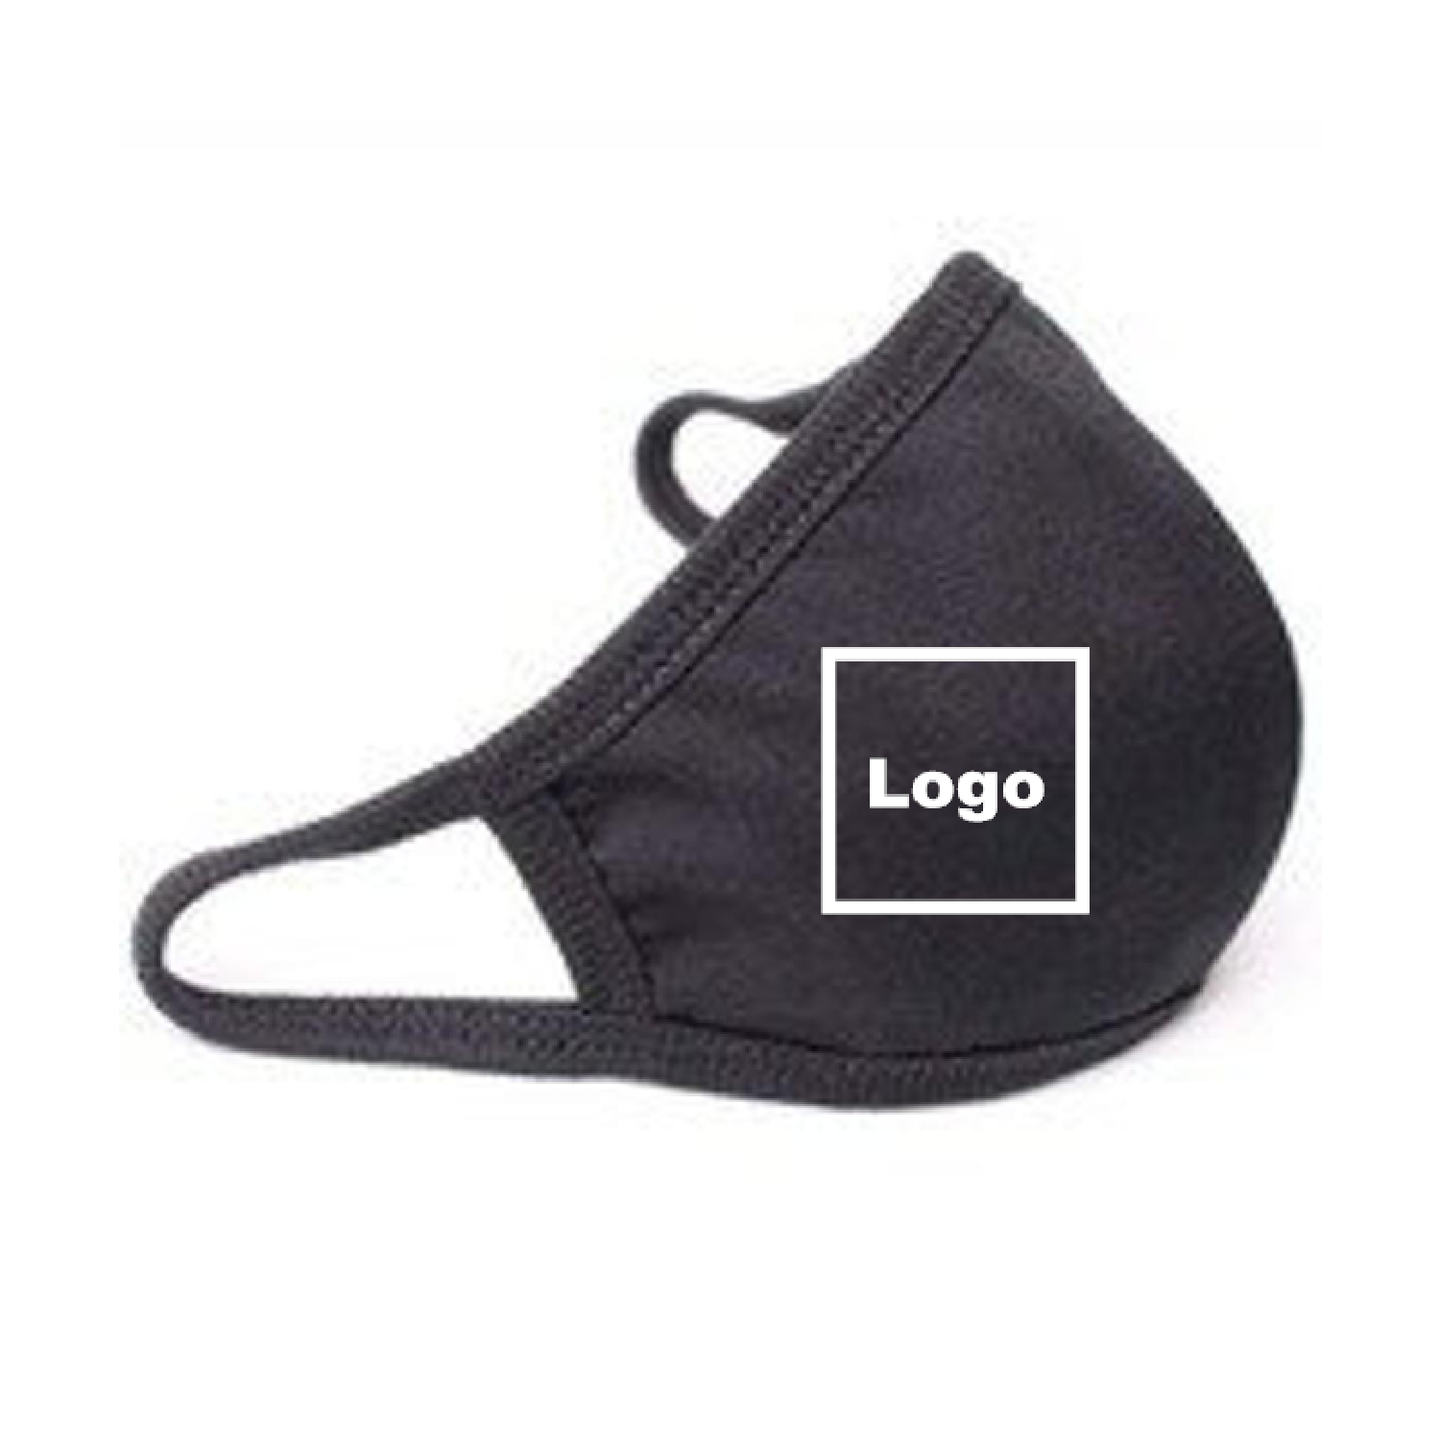 Custom Printed Personalised Face Mask Logo / Any Text/Name / Reusable / Washable